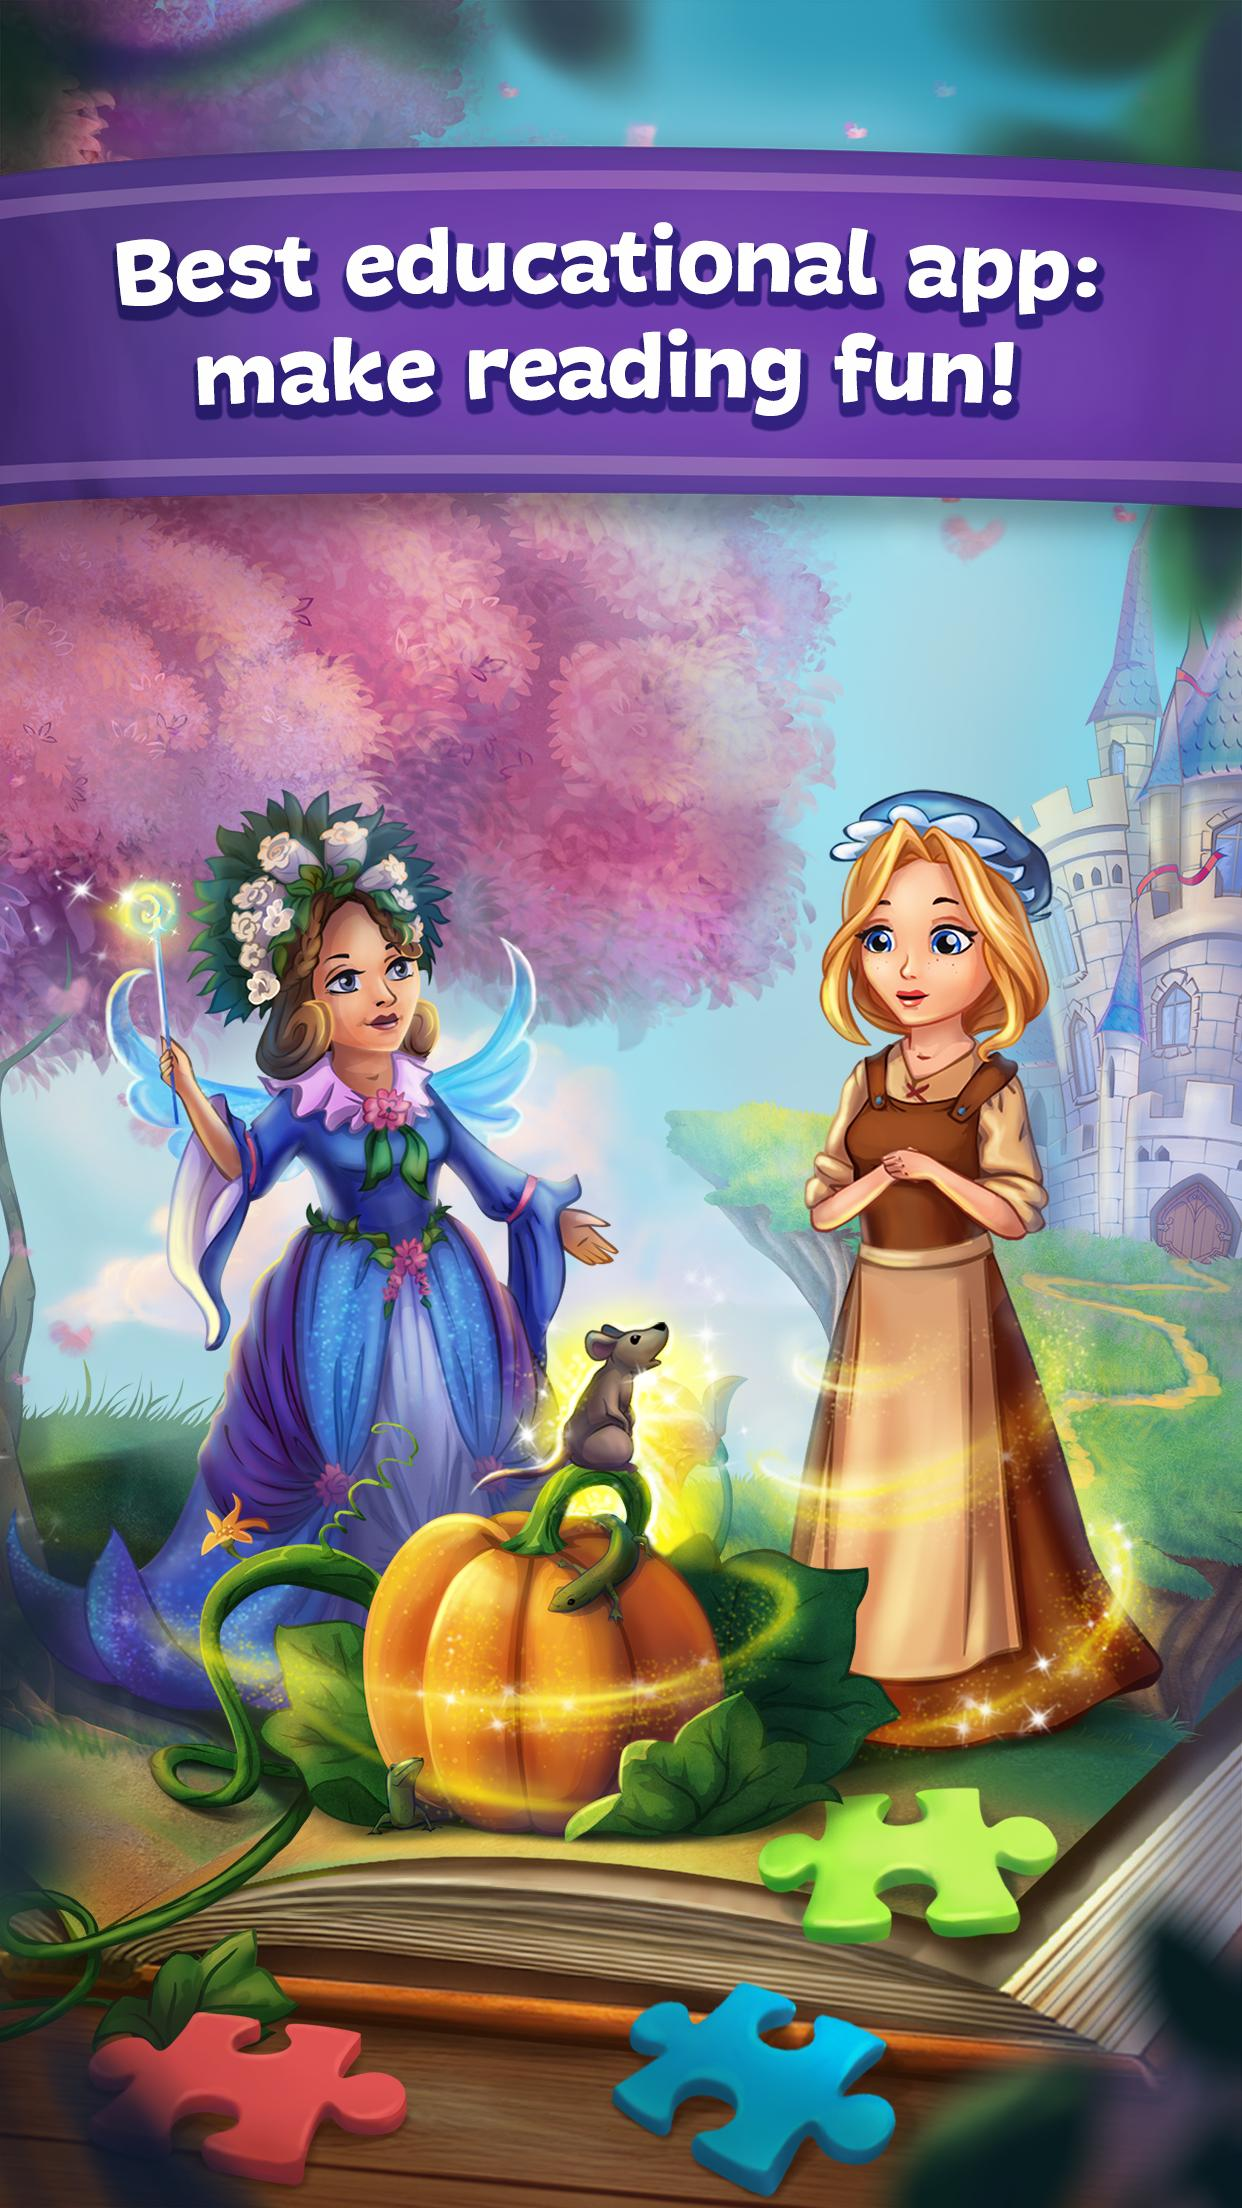 Fairy Tales Children's Books, Stories and Games 2.7.0 Screenshot 1